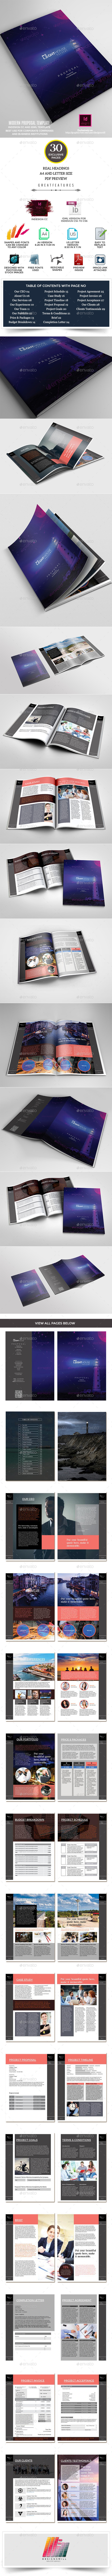 GraphicRiver Lighthouse Unique Business Proposal Temaplte 10773211